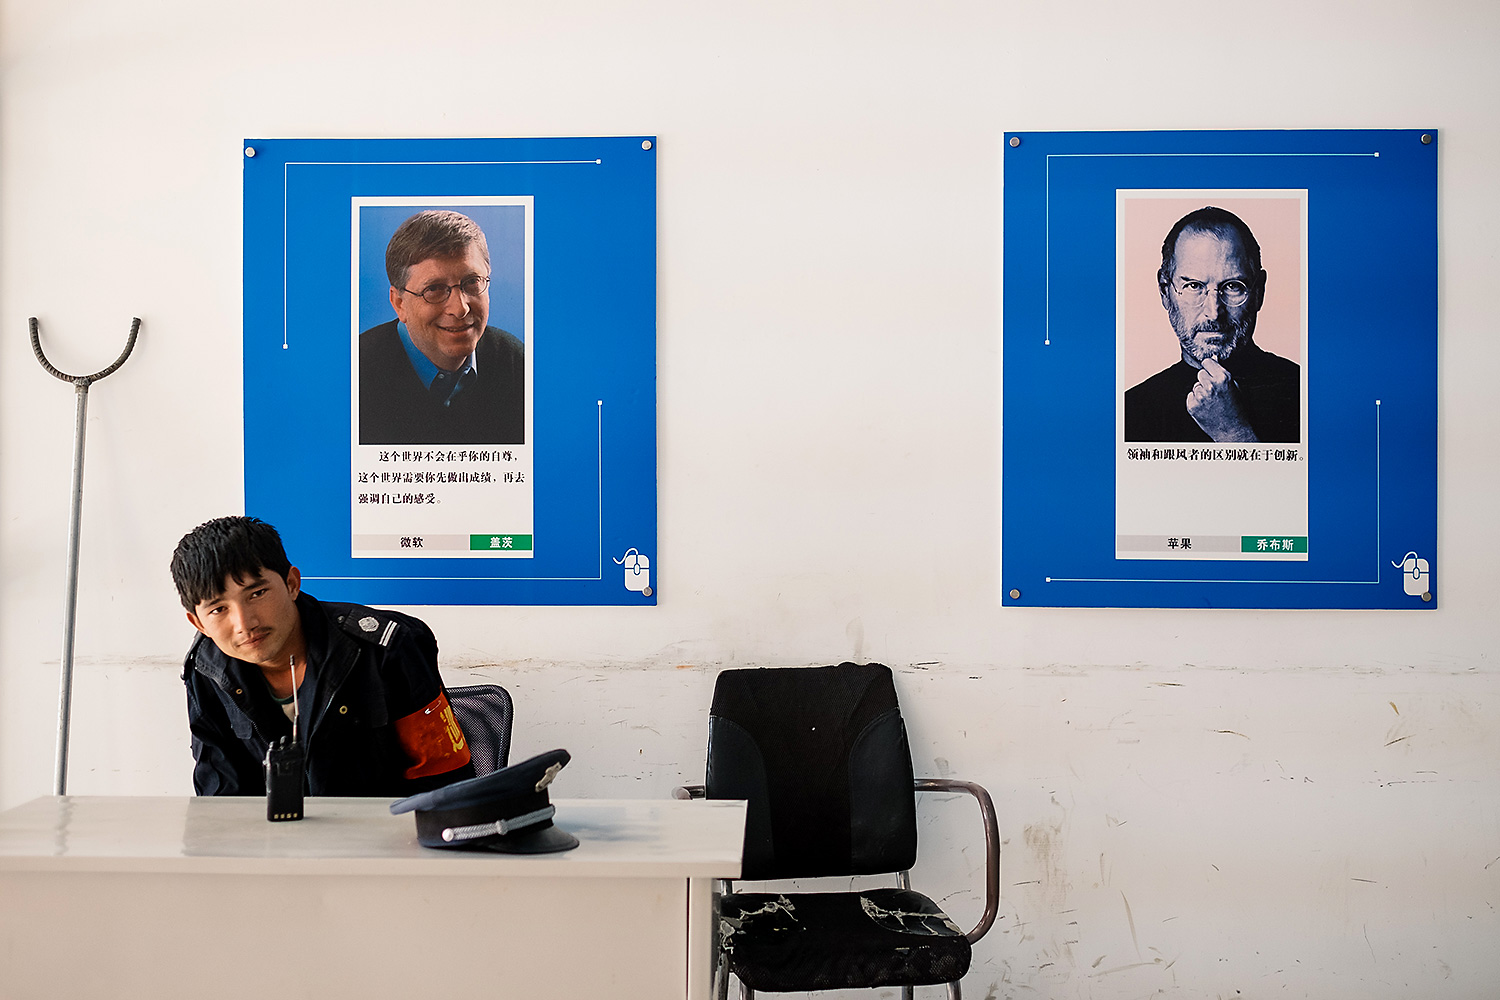 A guard rests below inspirational posters of Microsoft's Bill Gates and Apple's Steve Jobs at the Kashgar E-commerce Headquarters Base of West China, a government incubator.